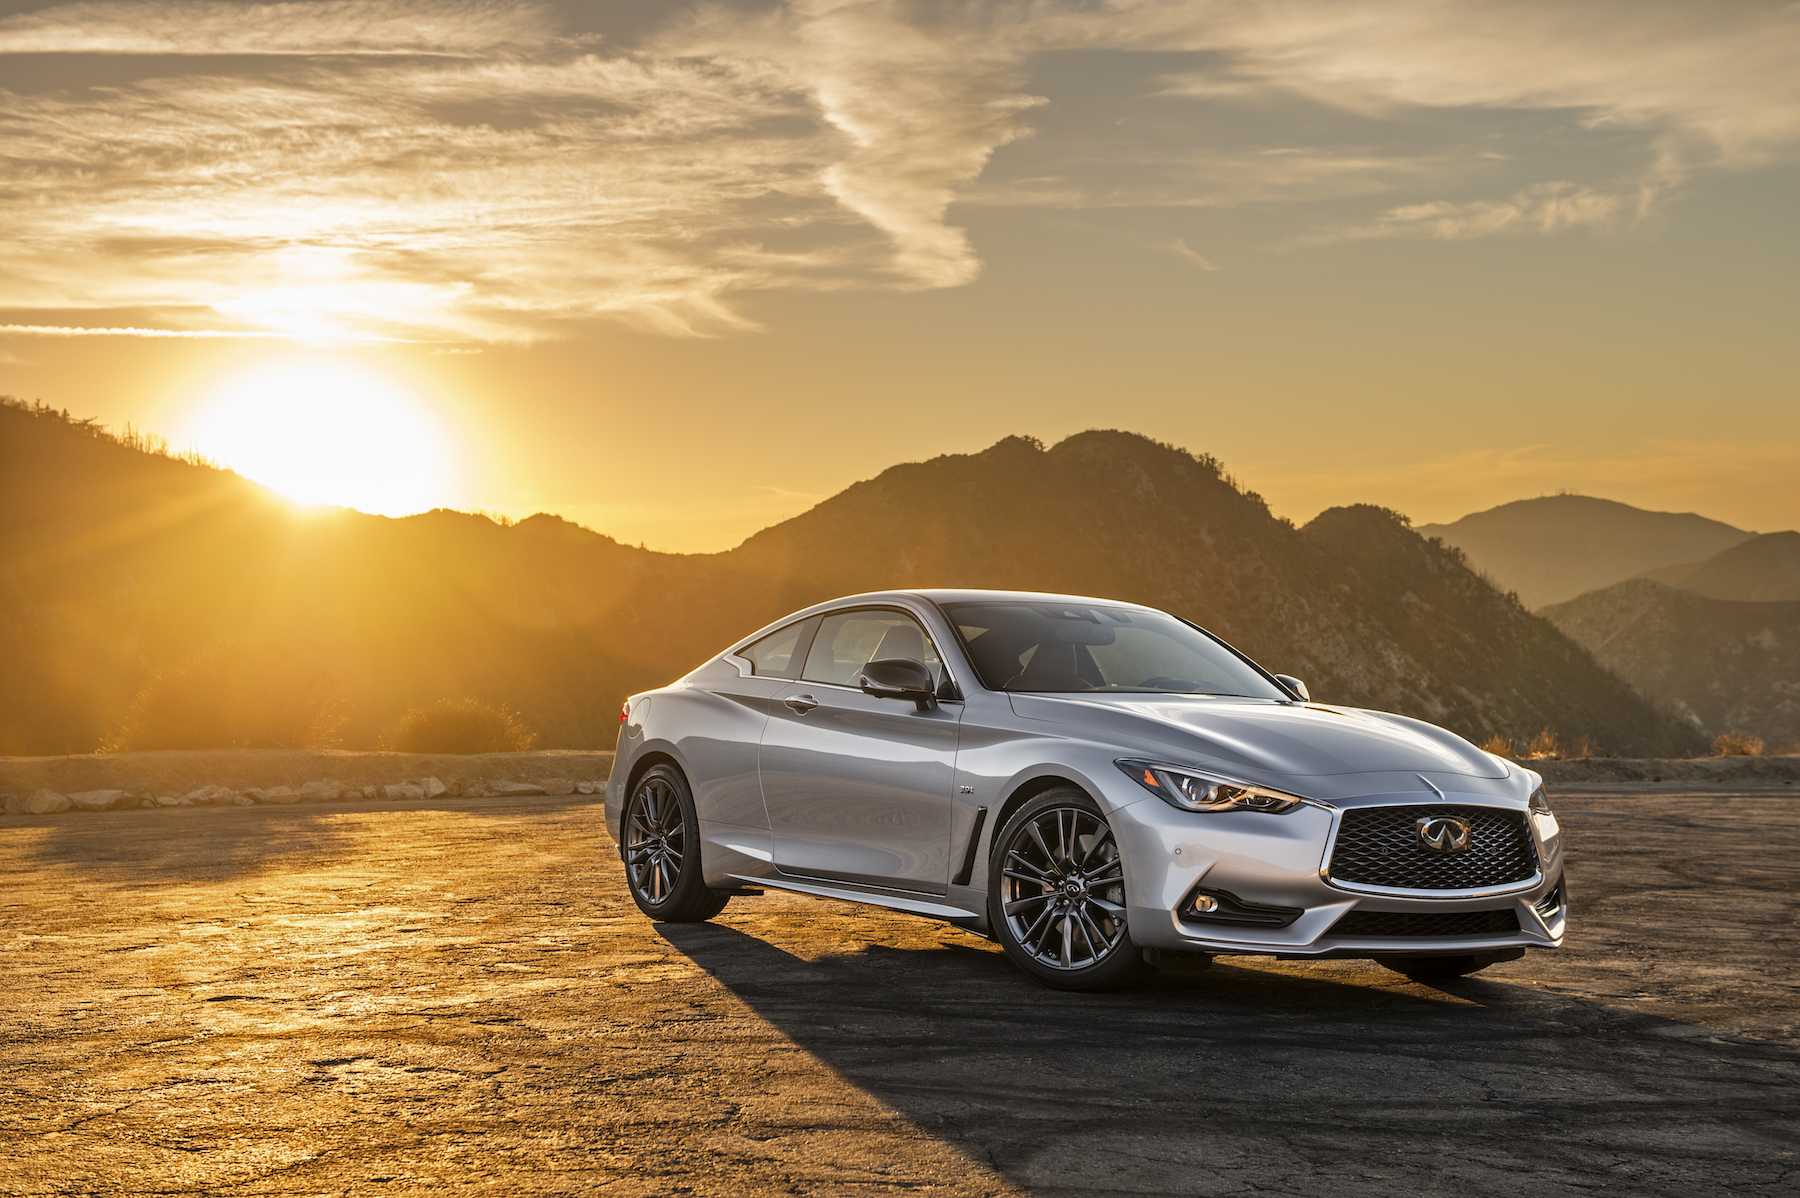 2017 Infiniti Q60 3.0 T Premium >> Infiniti Announces Pricing for Q60 3.0T Sport » AutoGuide.com News